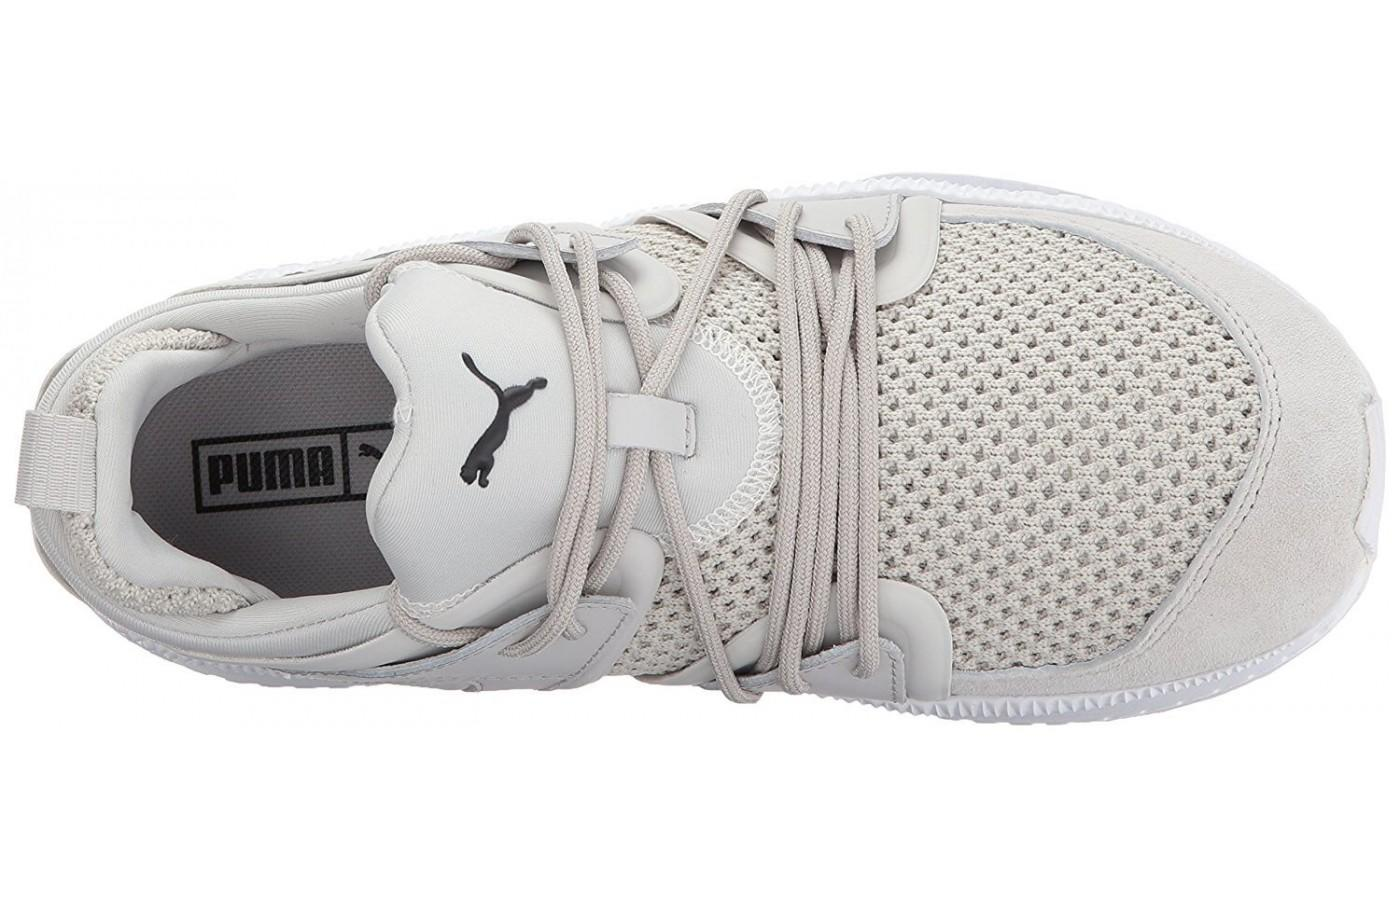 Crisscrossing cables keeps the feel secure without the use of laces.